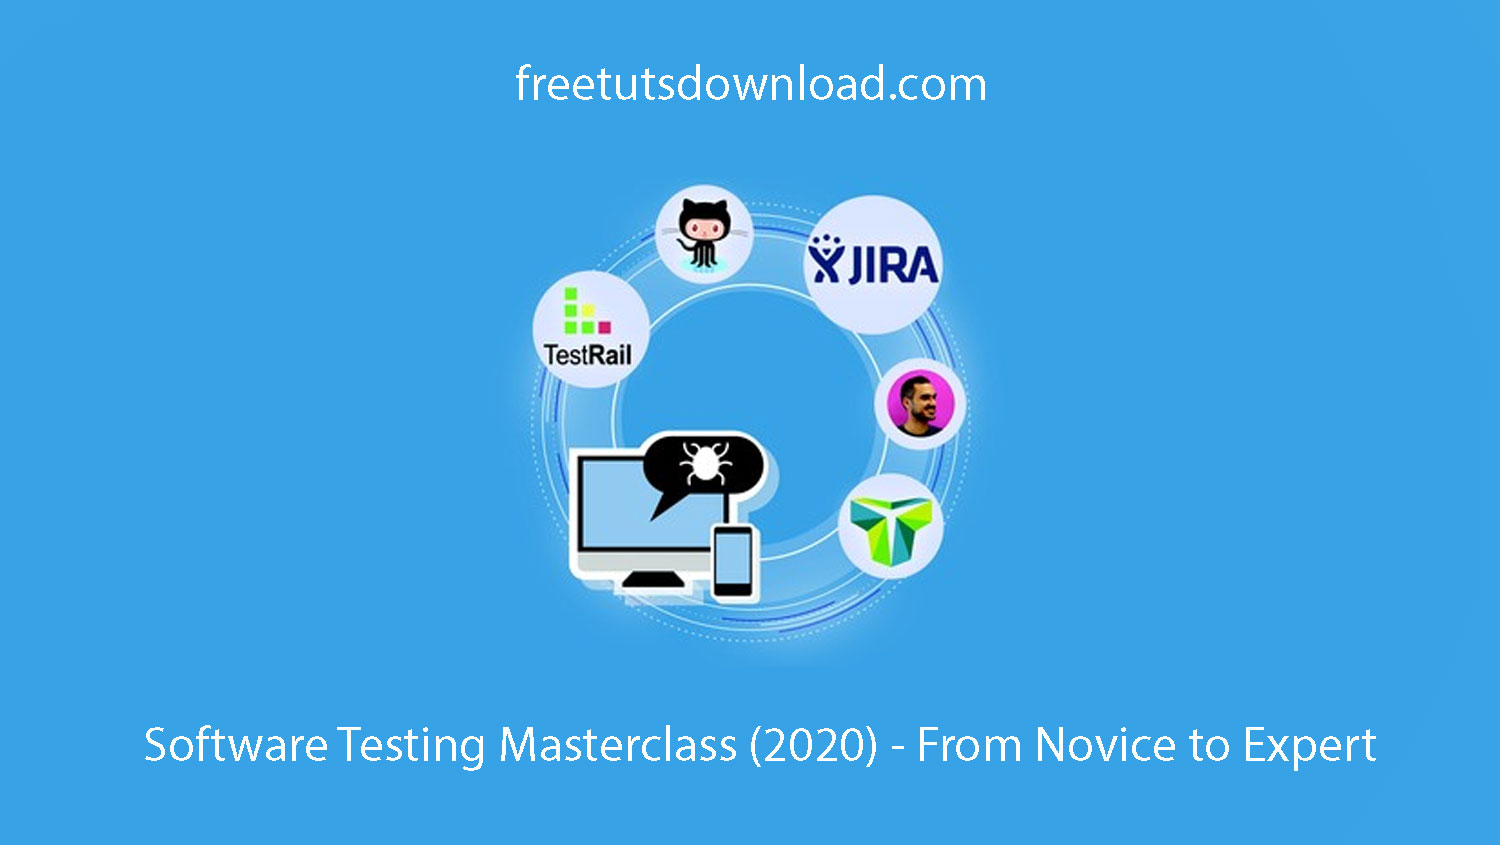 Software Testing Masterclass (2020) - From Novice to Expert